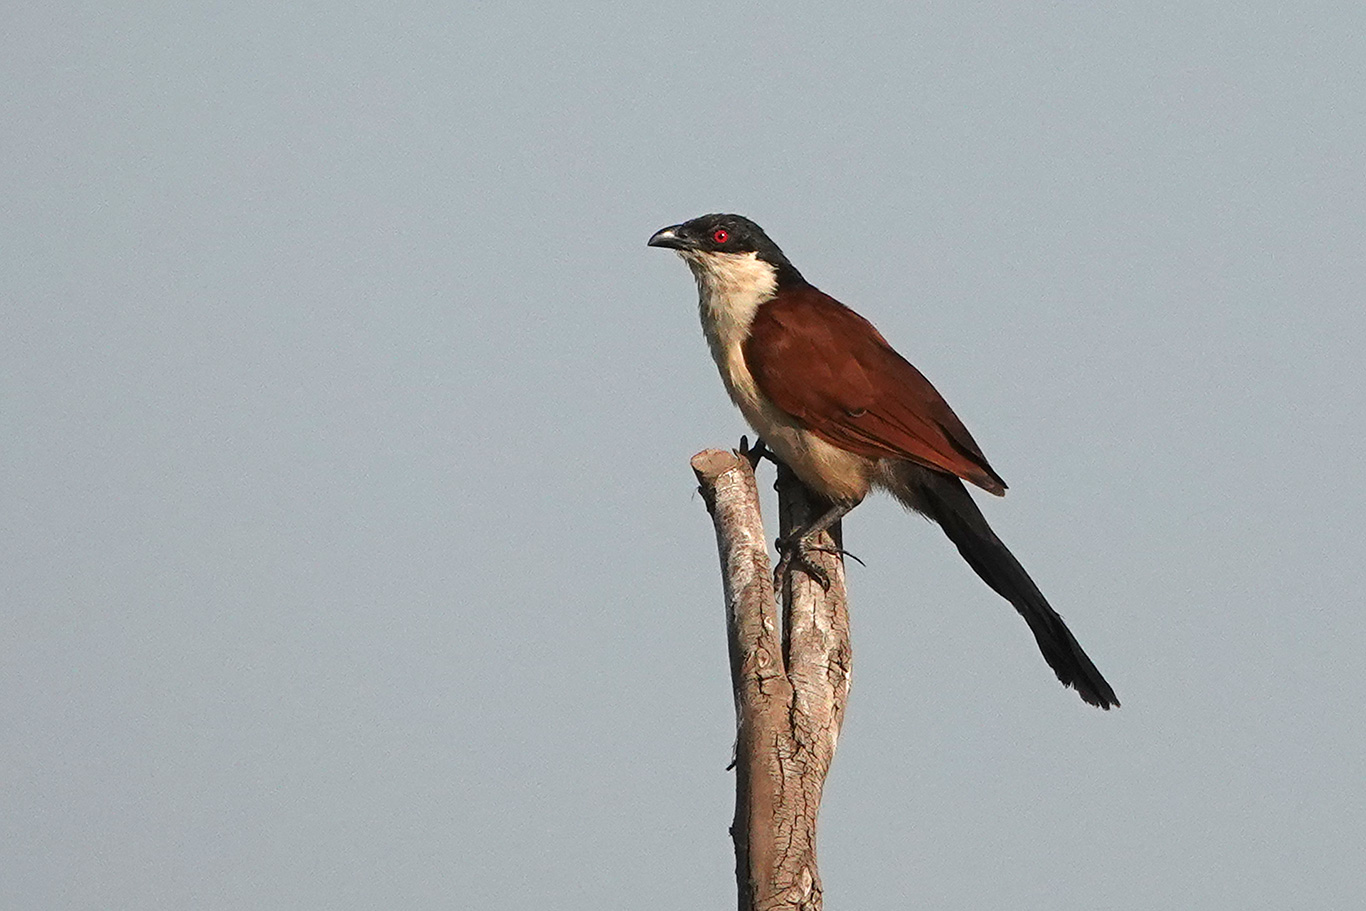 Senegal Coucal, Jakhaly, The Gambia.